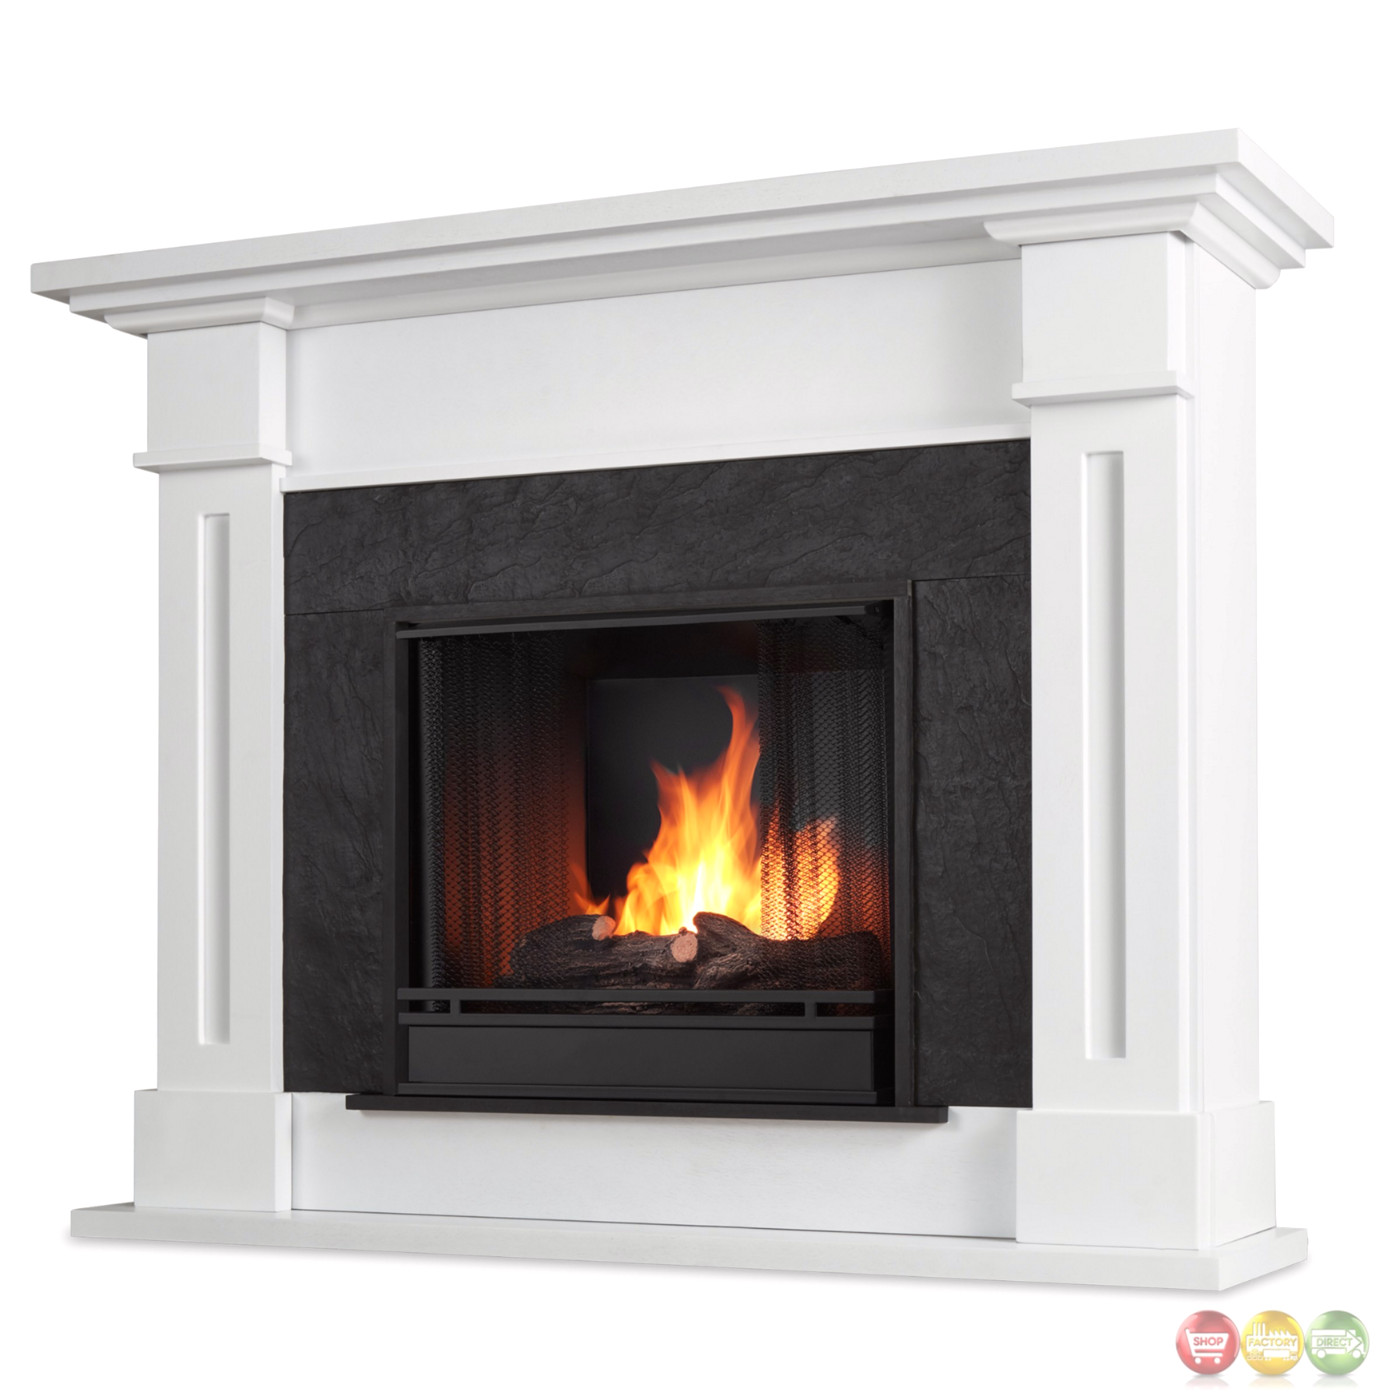 kipling ventless gel fuel fireplace in white with cast logs 54x42. Black Bedroom Furniture Sets. Home Design Ideas